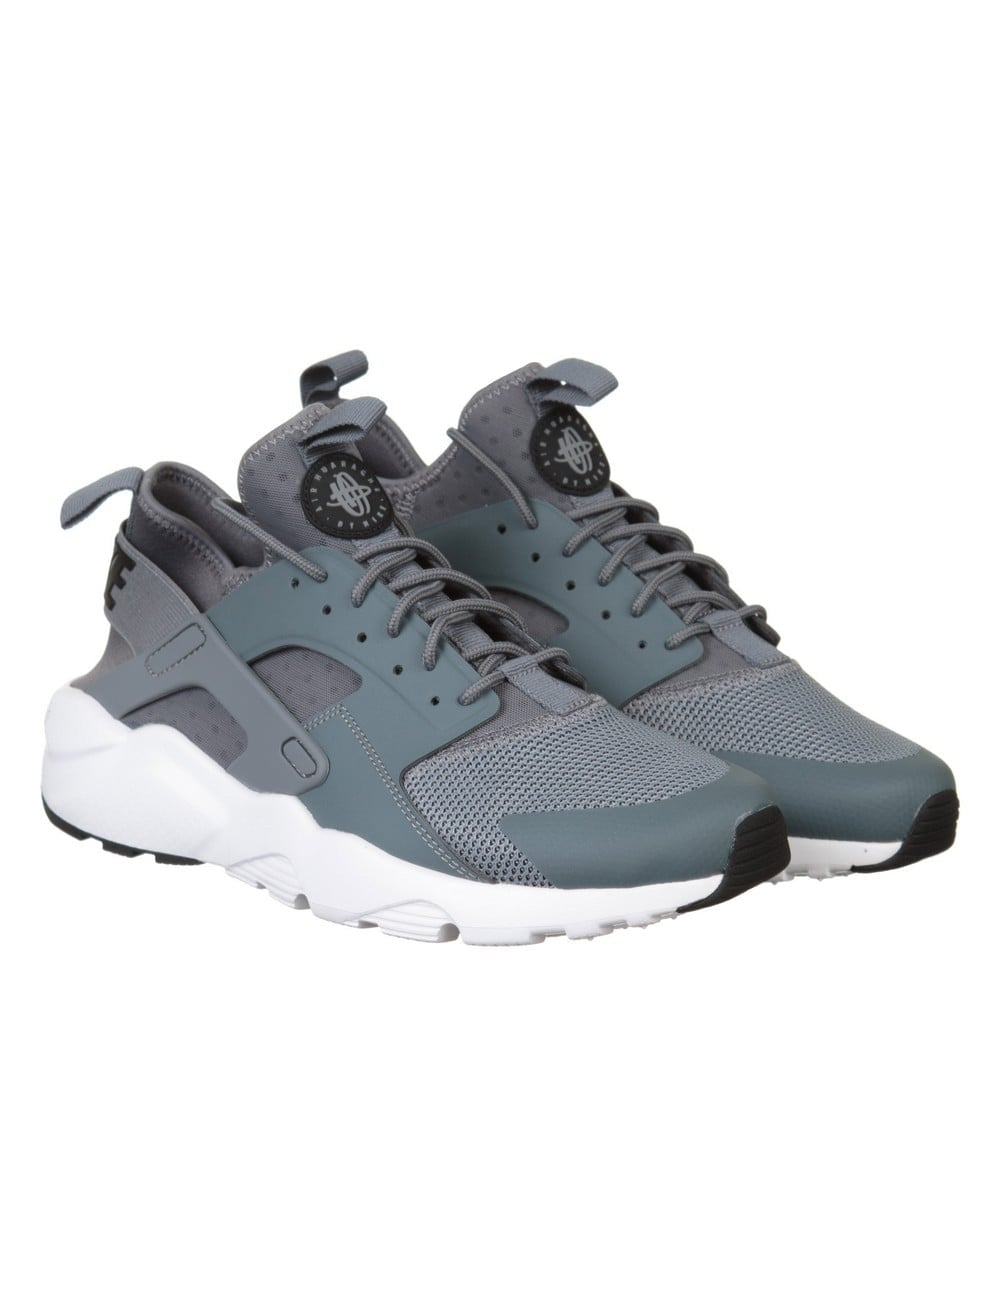 size 40 e1a65 d84a0 Nike Air Huarache Ultra Shoes - Cool Grey White